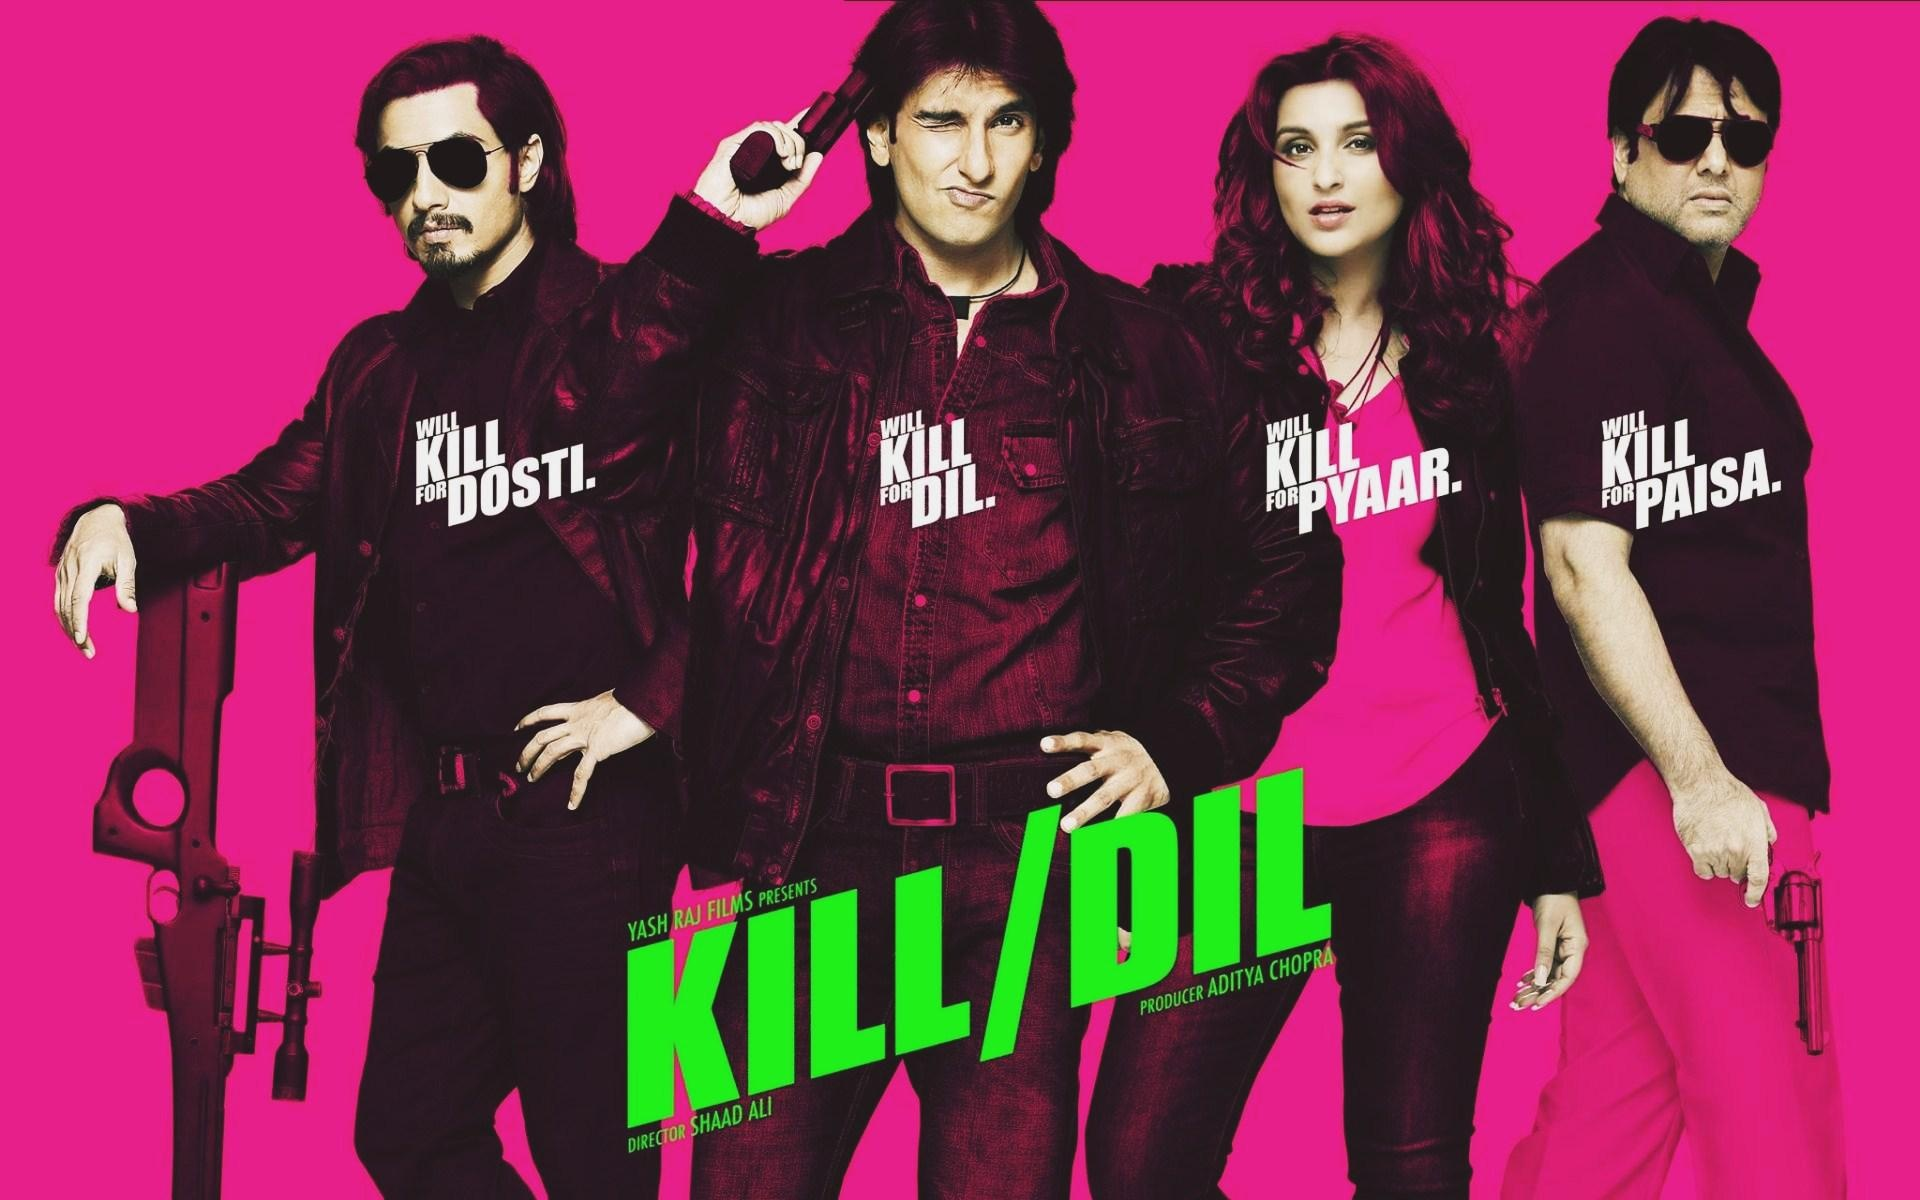 Kill dil movie wallpapers in jpg format for free download.